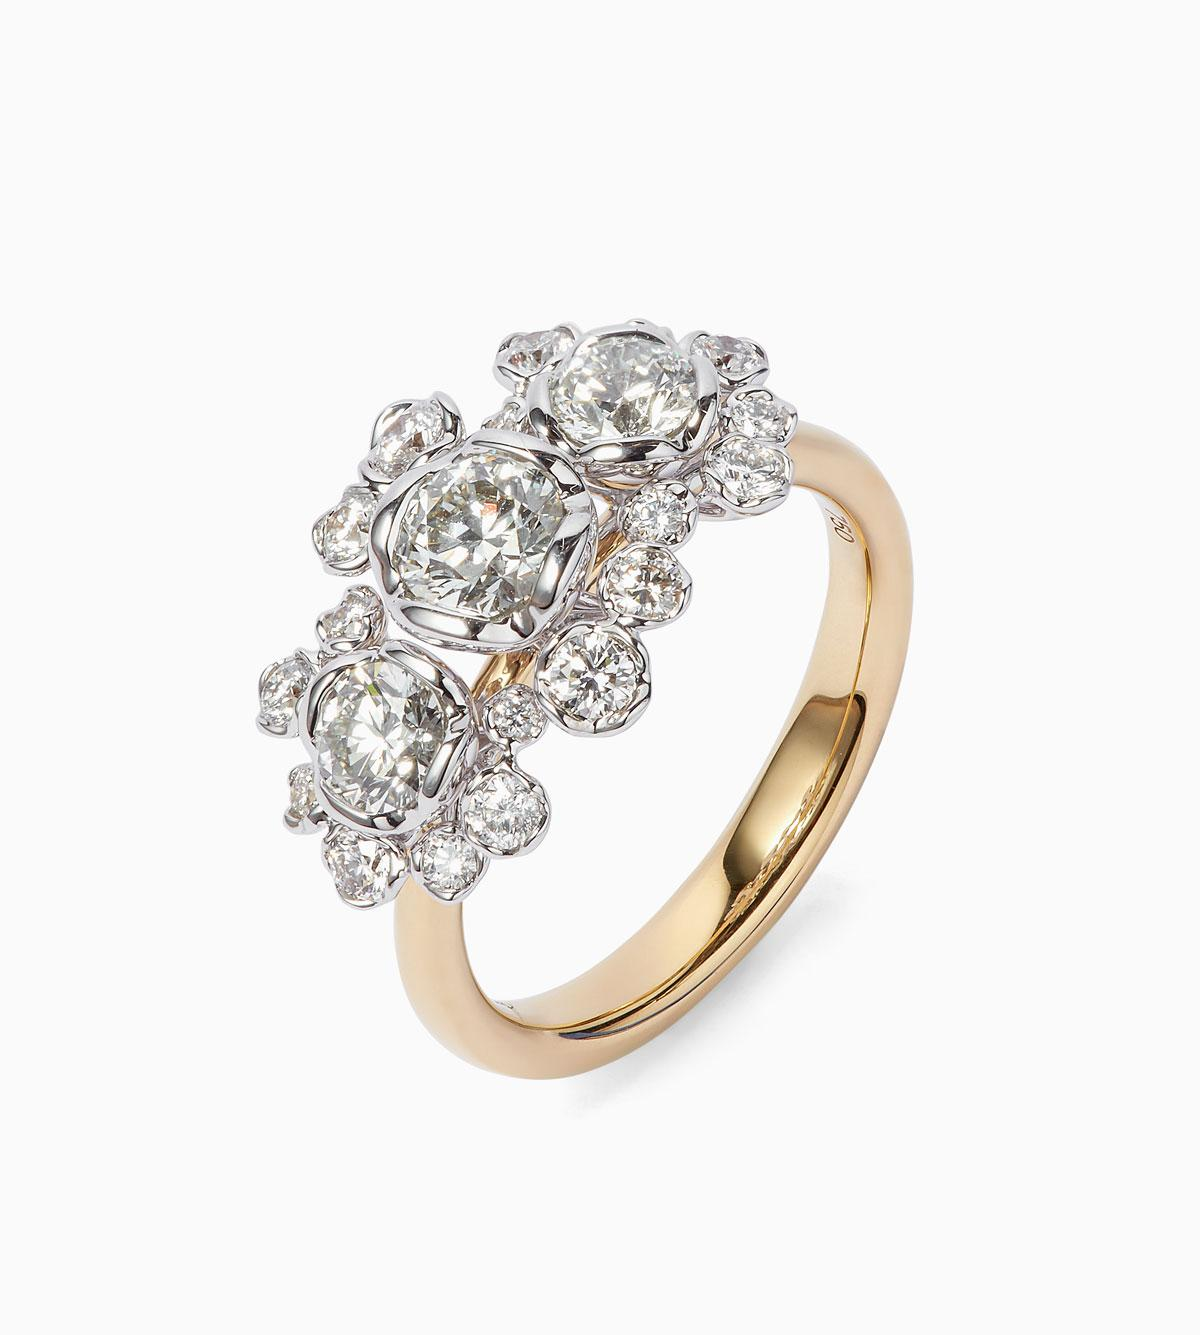 Gold engagement ring with diamonds of different sizes clustered together